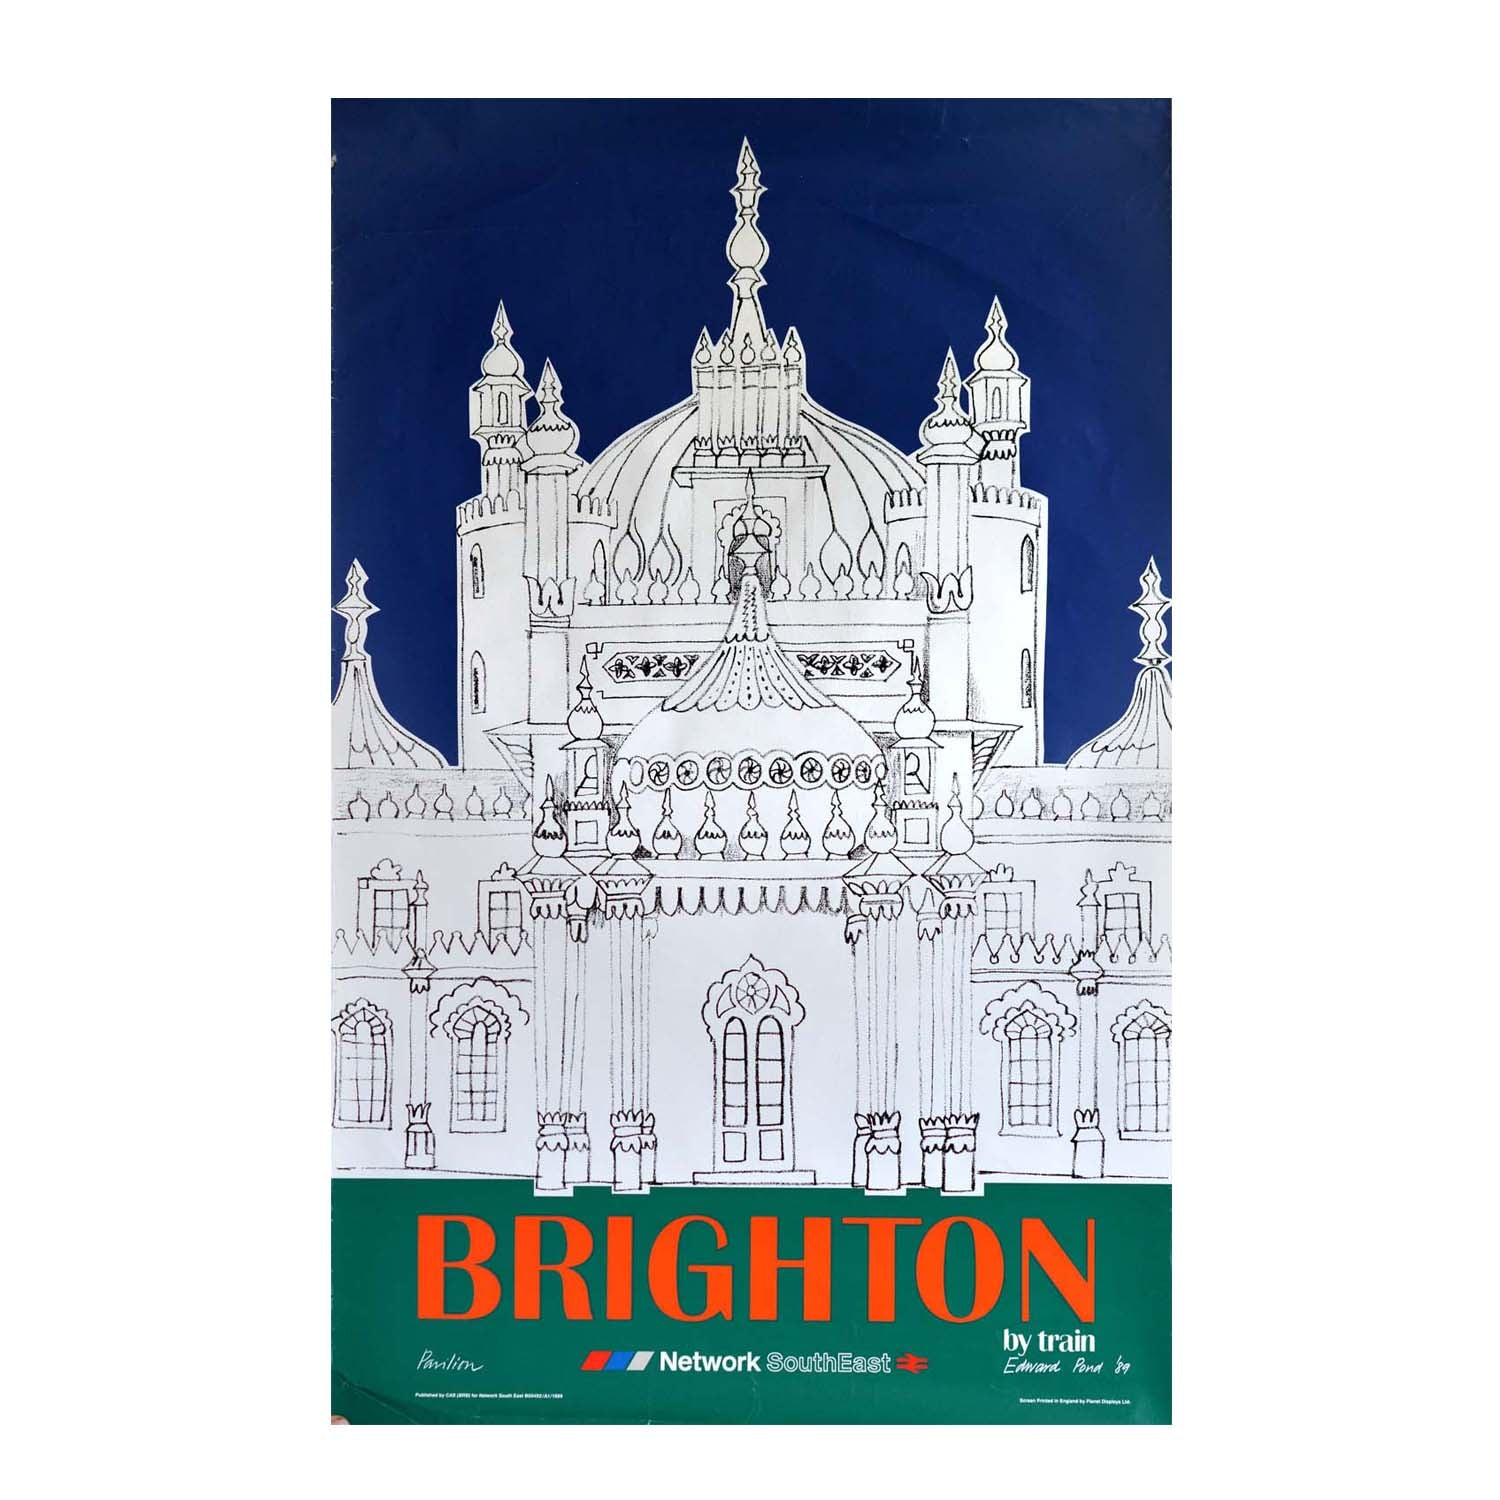 Original British Rail poster Edward Pond Brighton